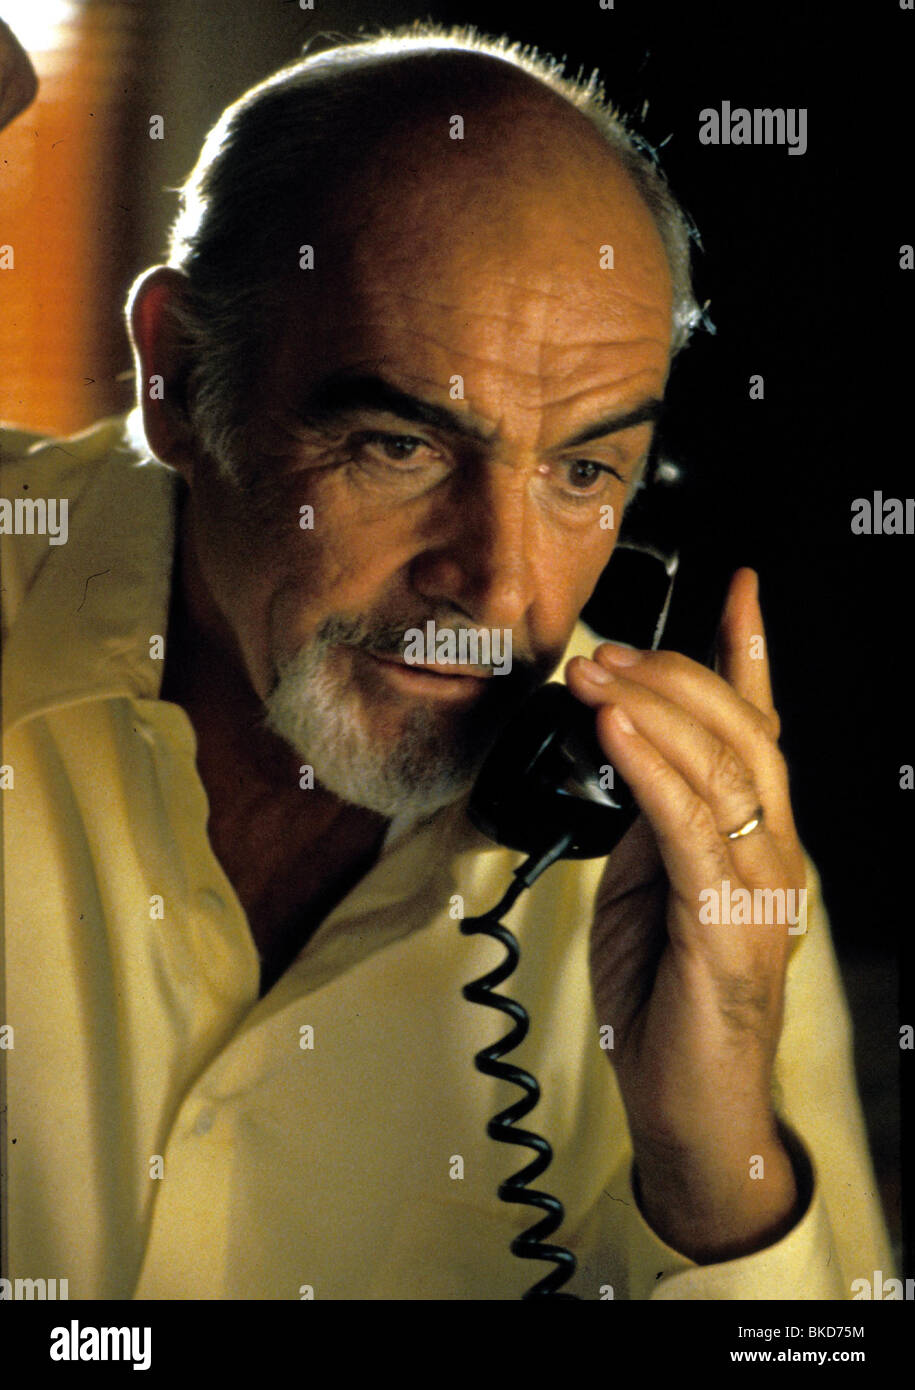 JUST CAUSE -1995 SEAN CONNERY - Stock Image